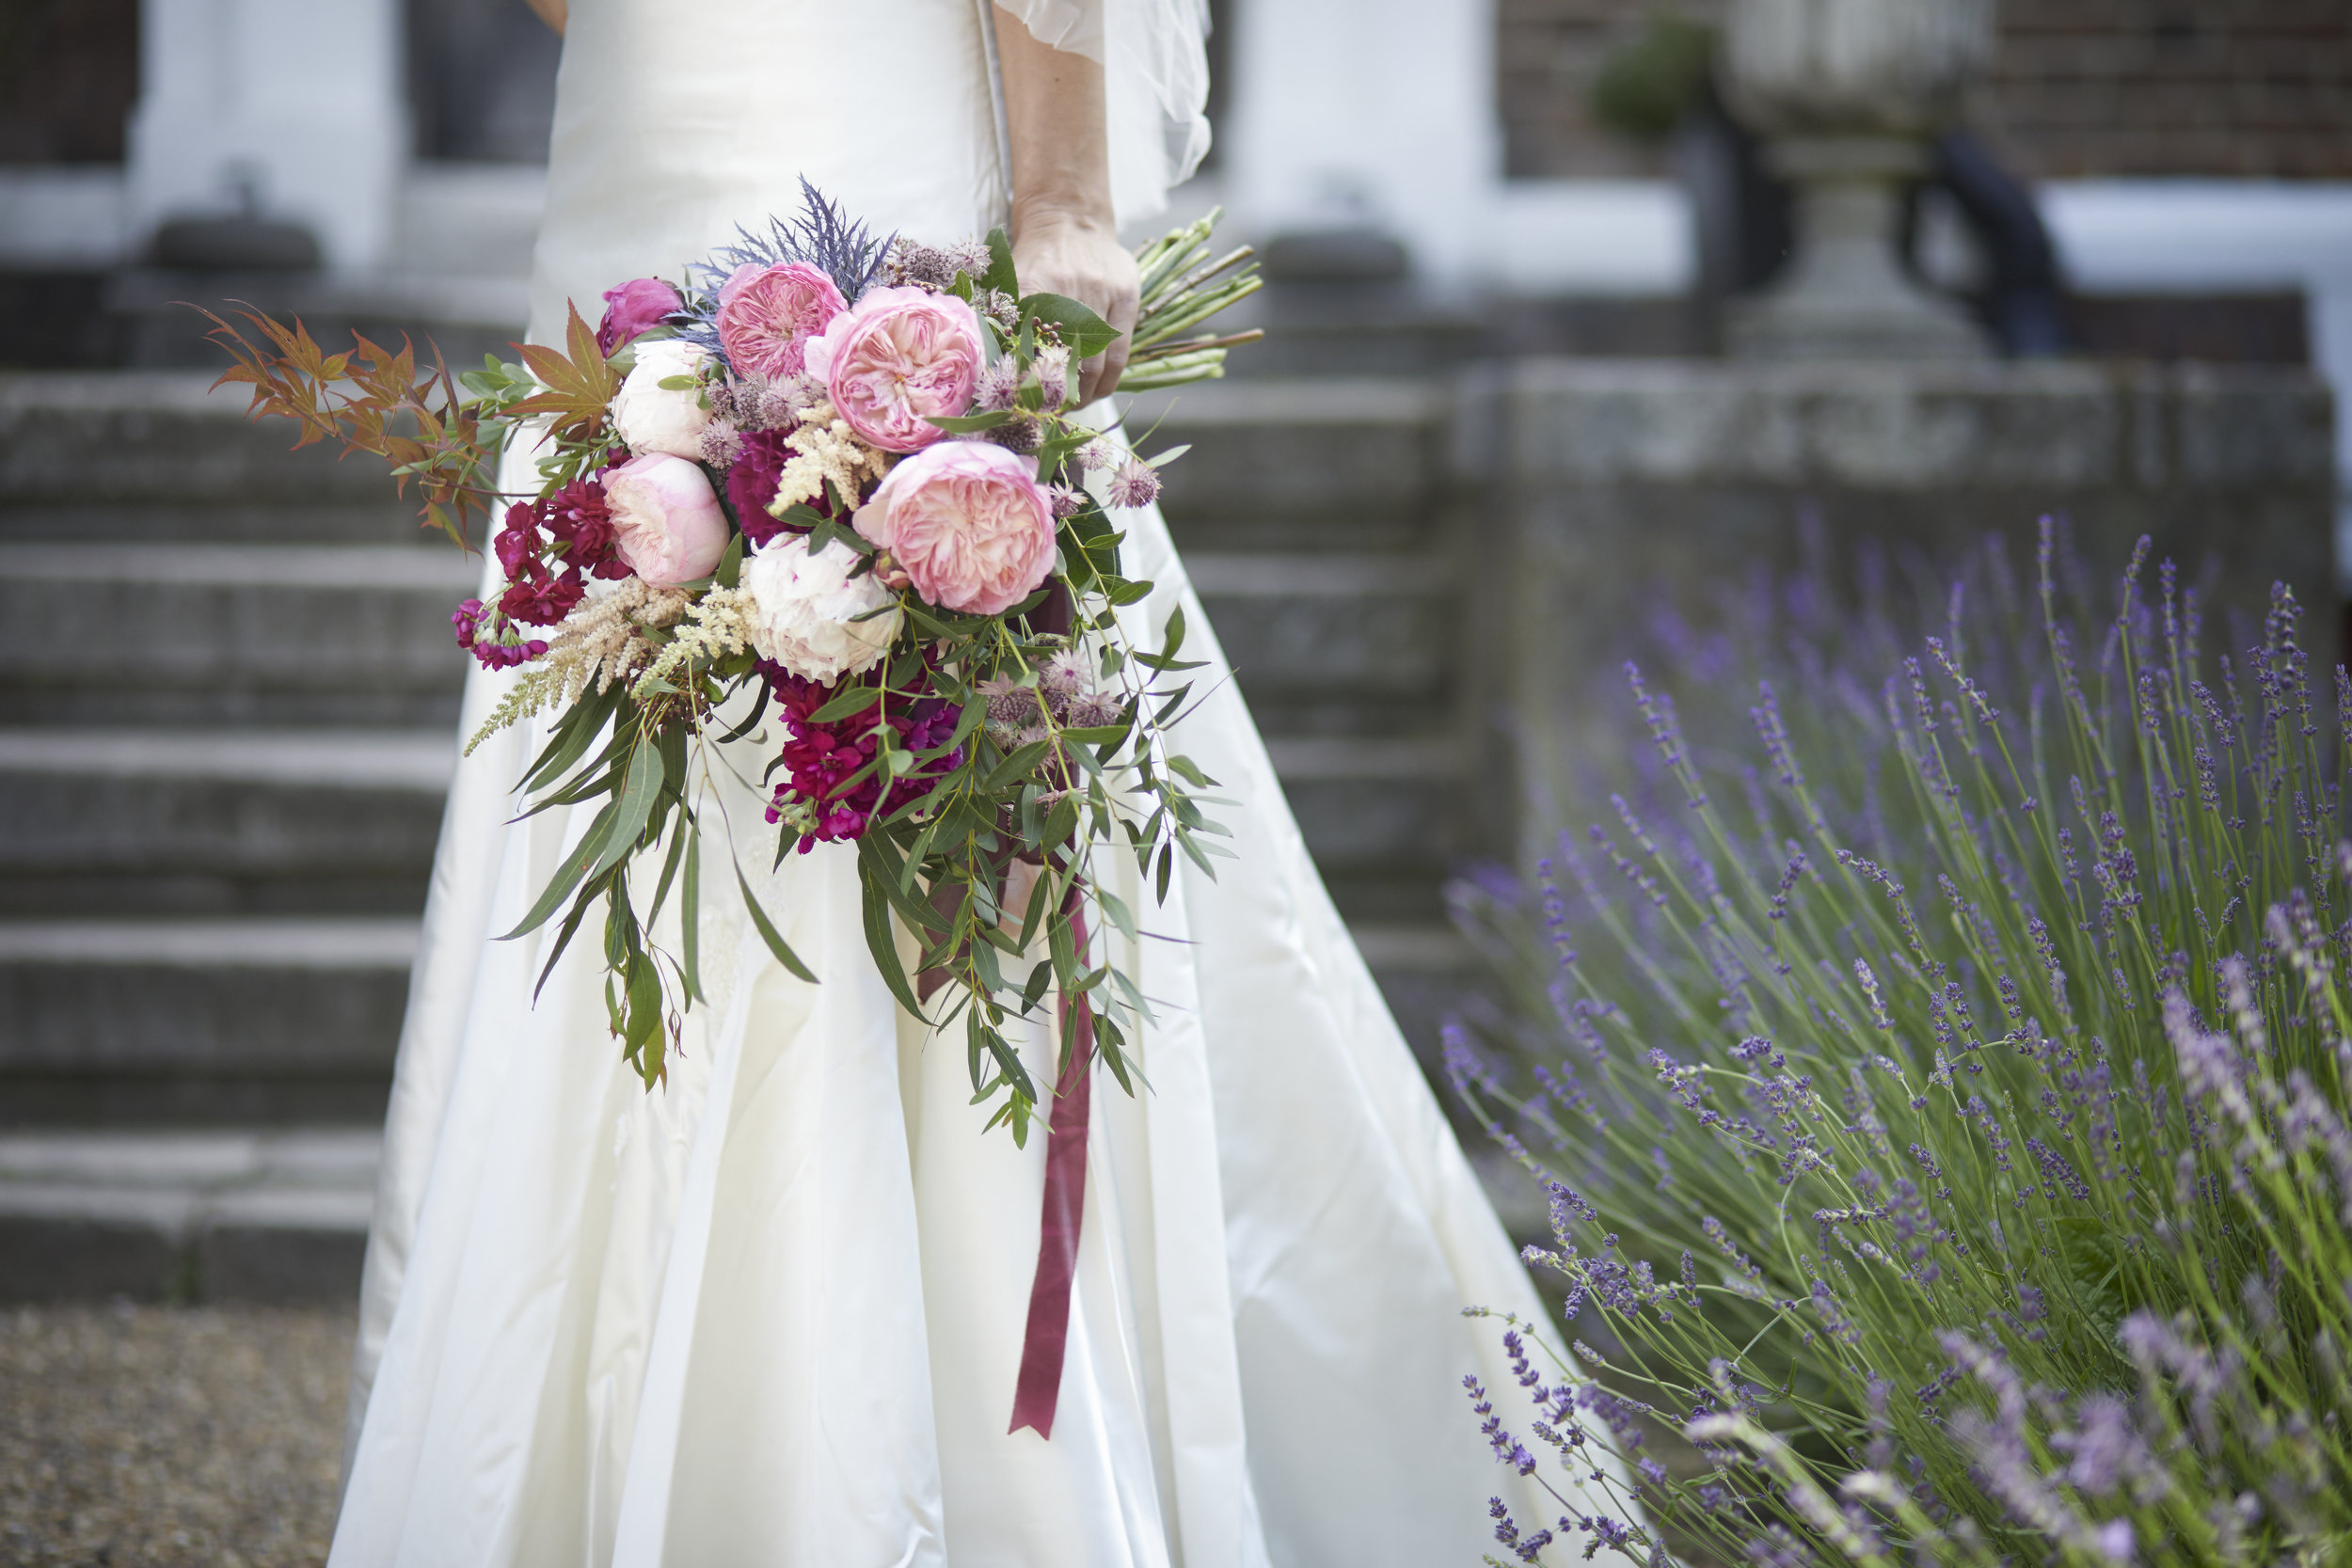 Clare Oliver Flowers wedding bouquet.jpg